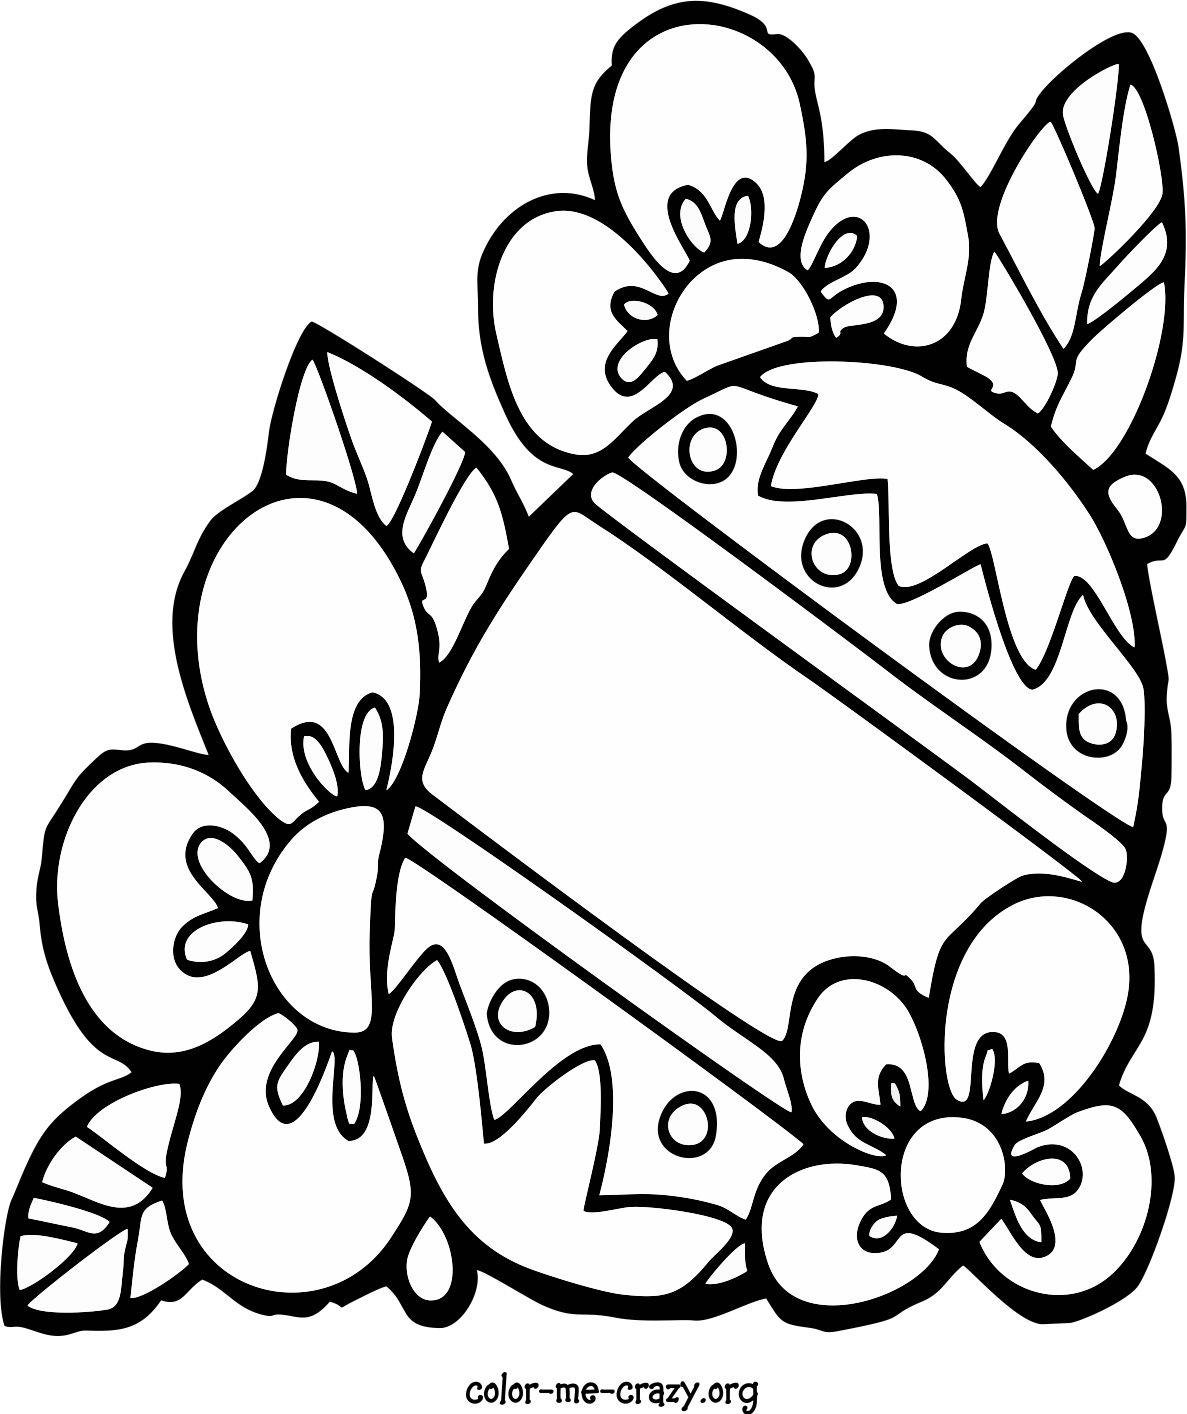 coloring pages easter - photo#10